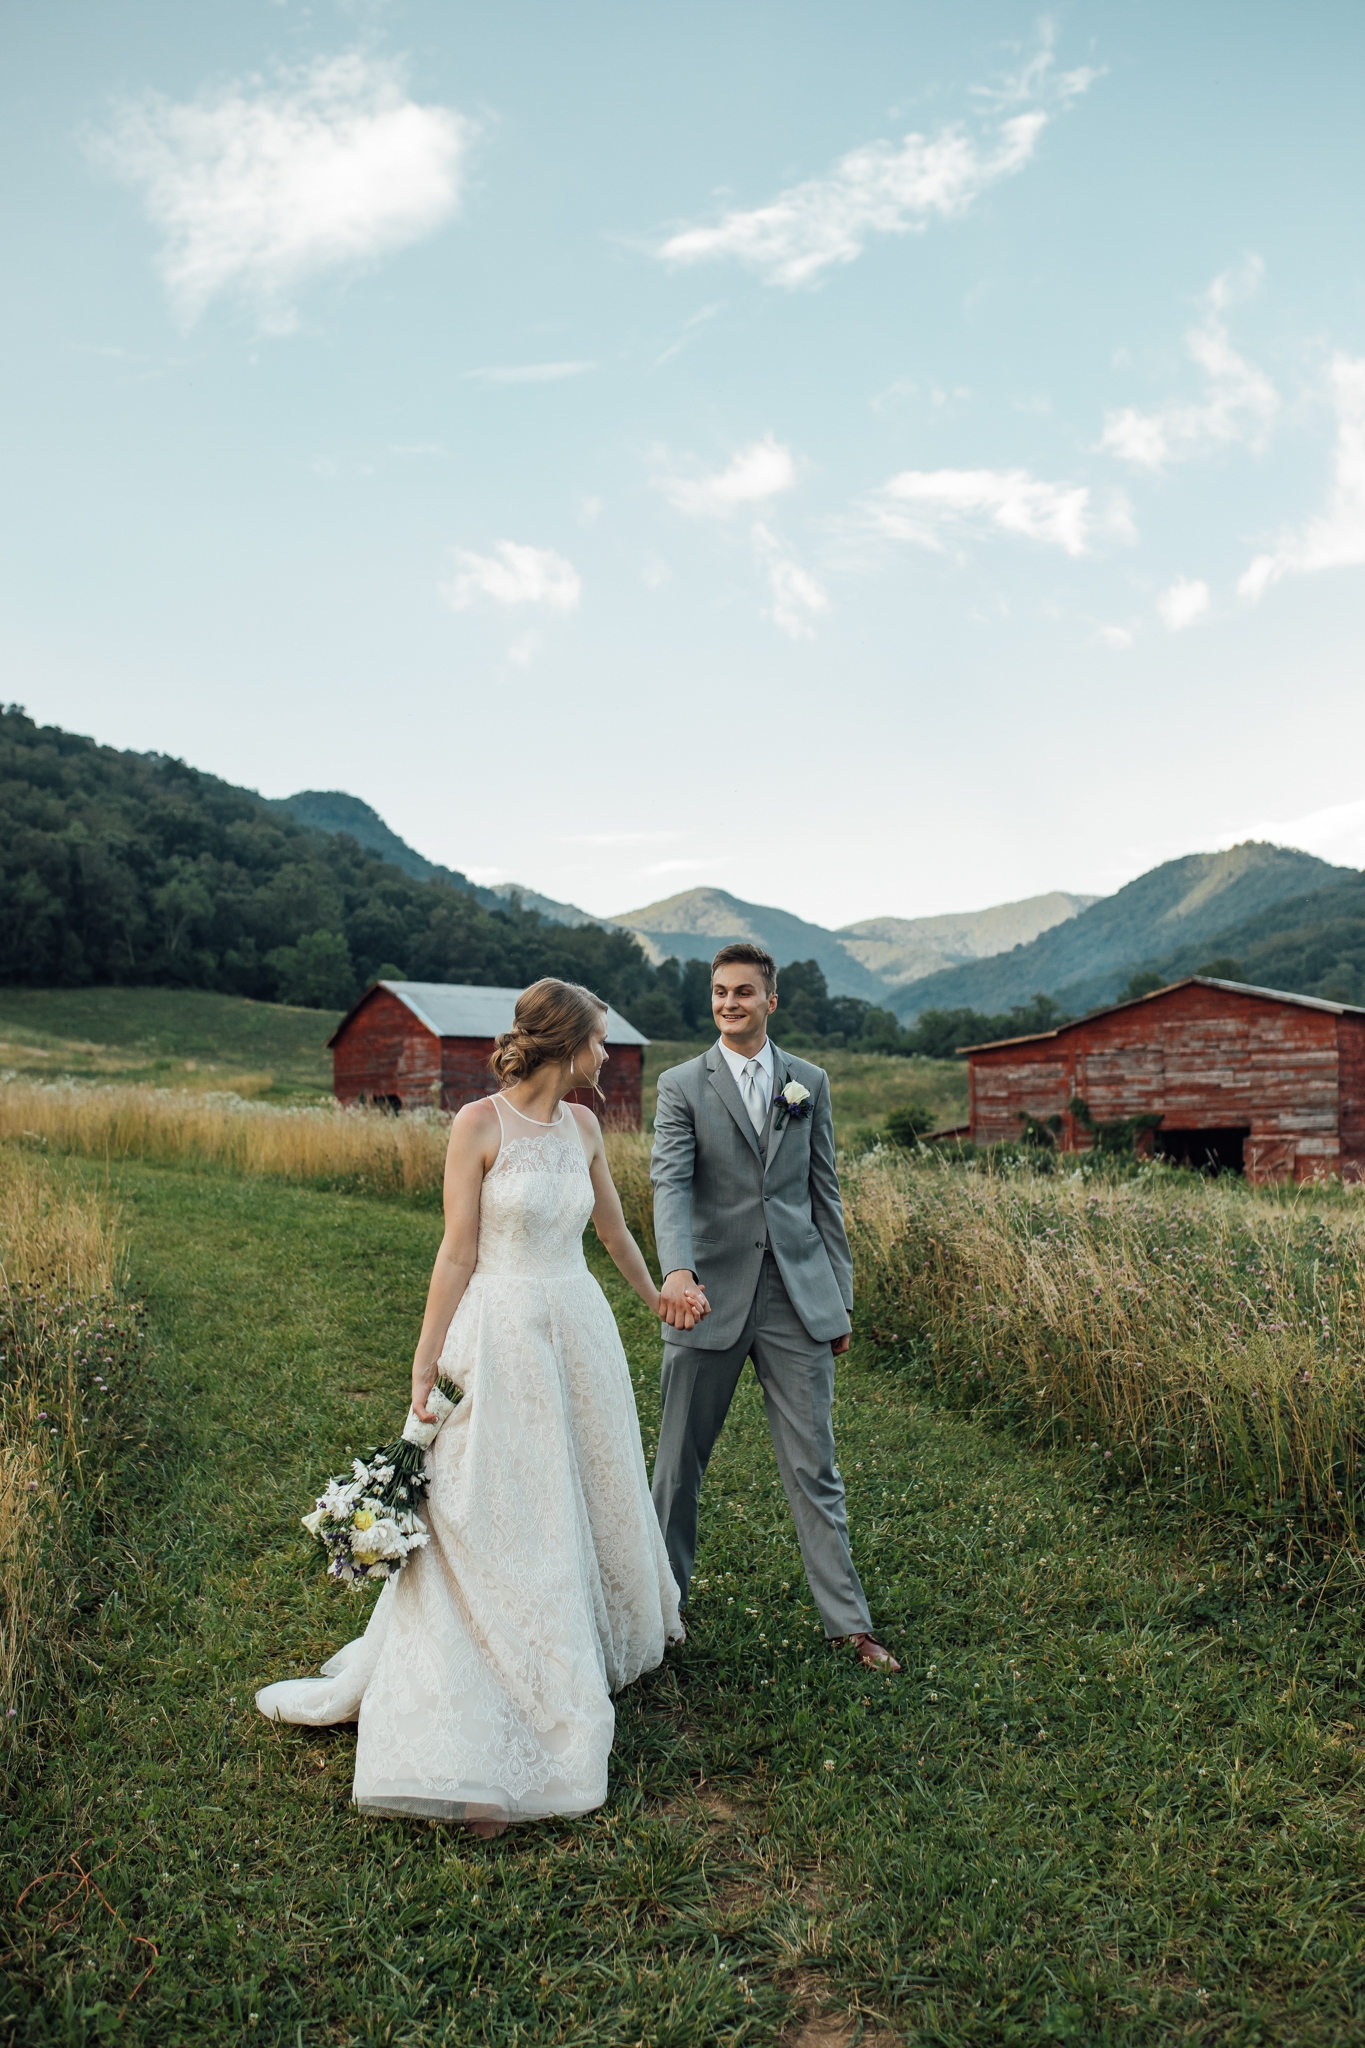 ashville-wedding-photographers-thewarmtharoundyou--backyard-asheville-wedding-mountain-wedding (220 of 244).jpg